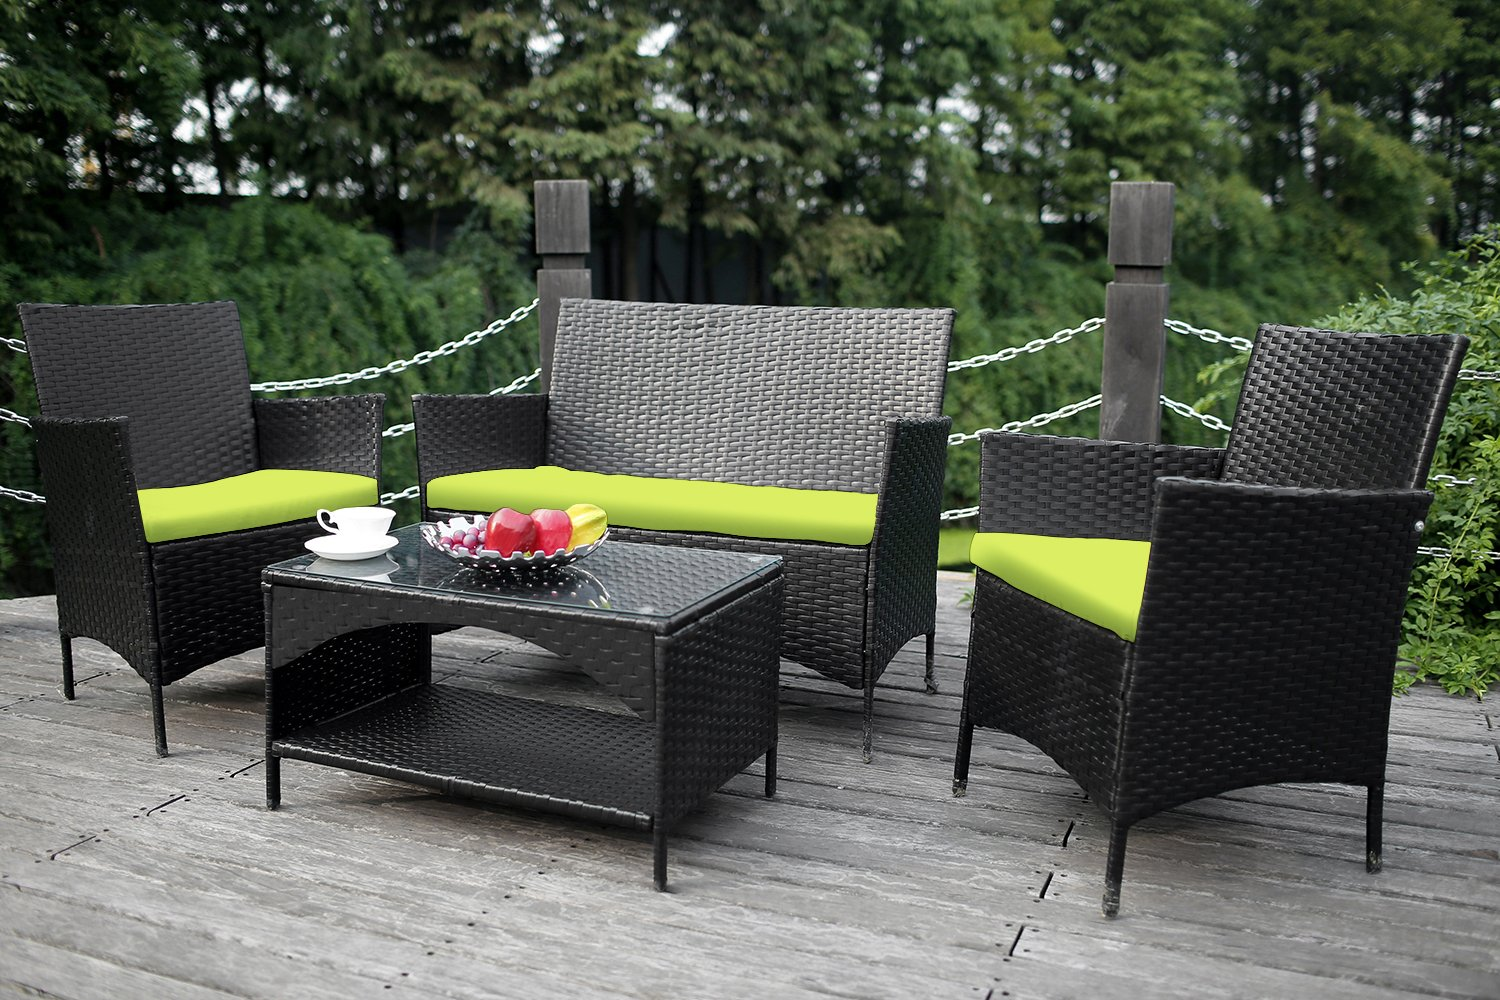 amazoncom merax 4 piece outdoor pe rattan wicker sofa and chairs set rattan patio garden furniture set cushion green garden outdoor